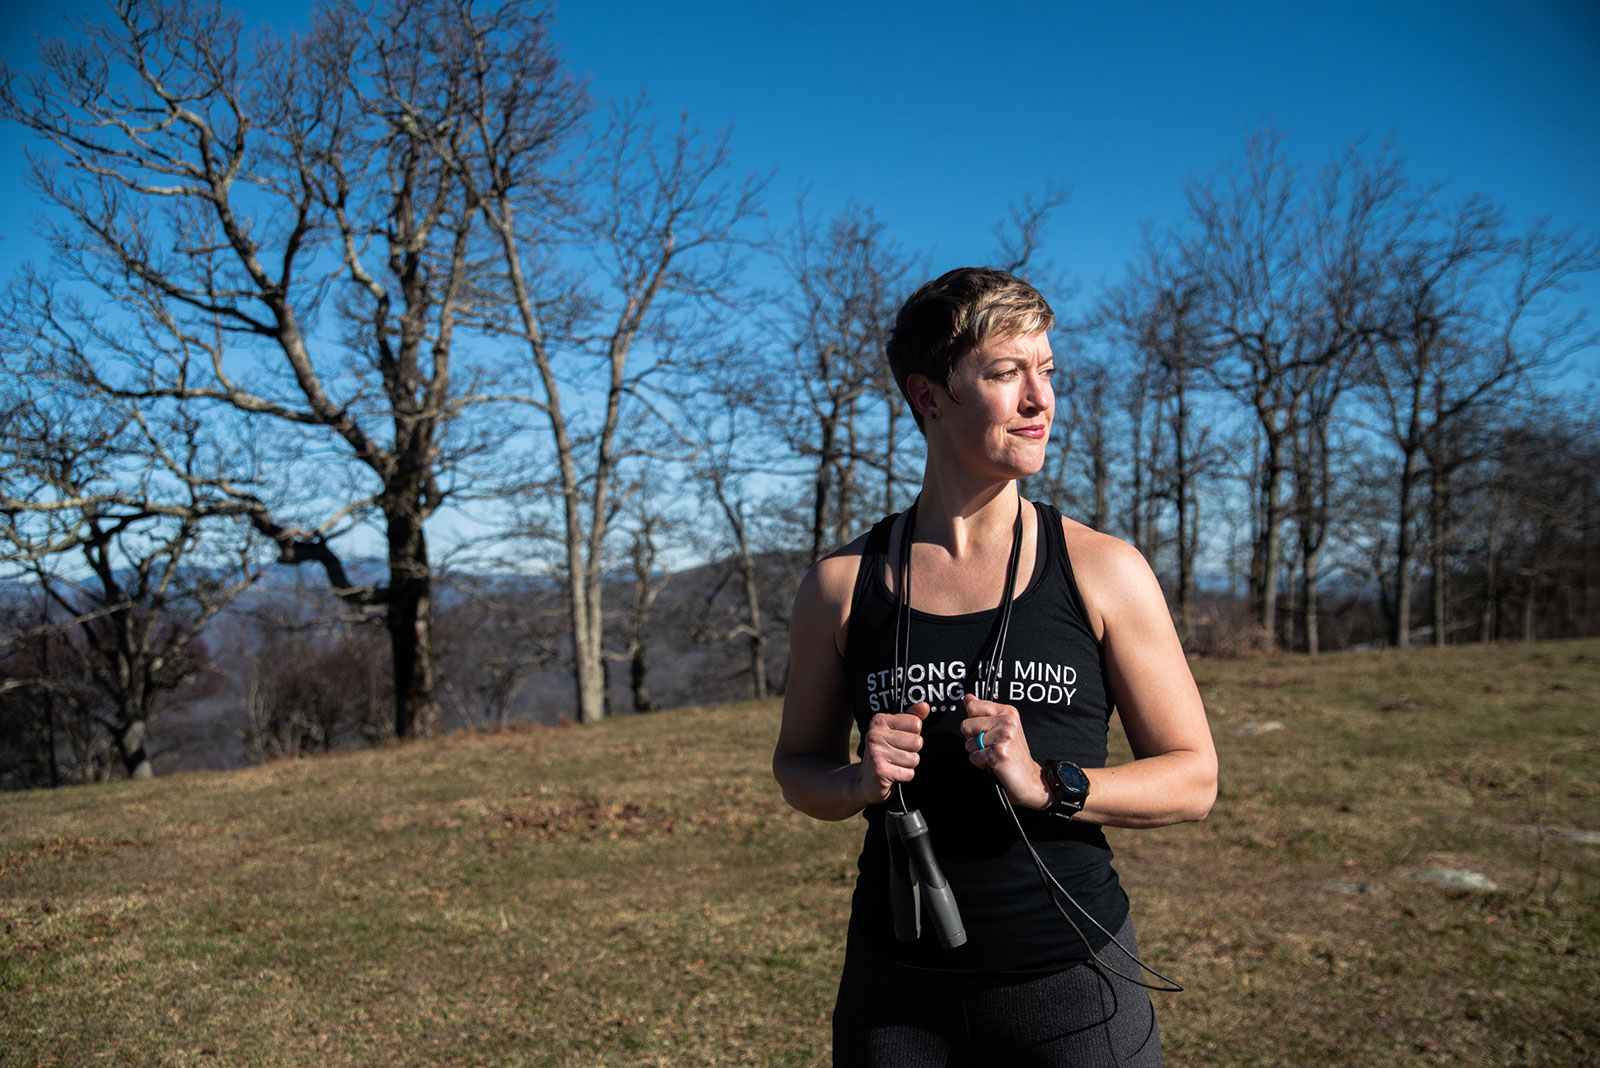 professional physical therapy for athletes, runners, men and women in asheville